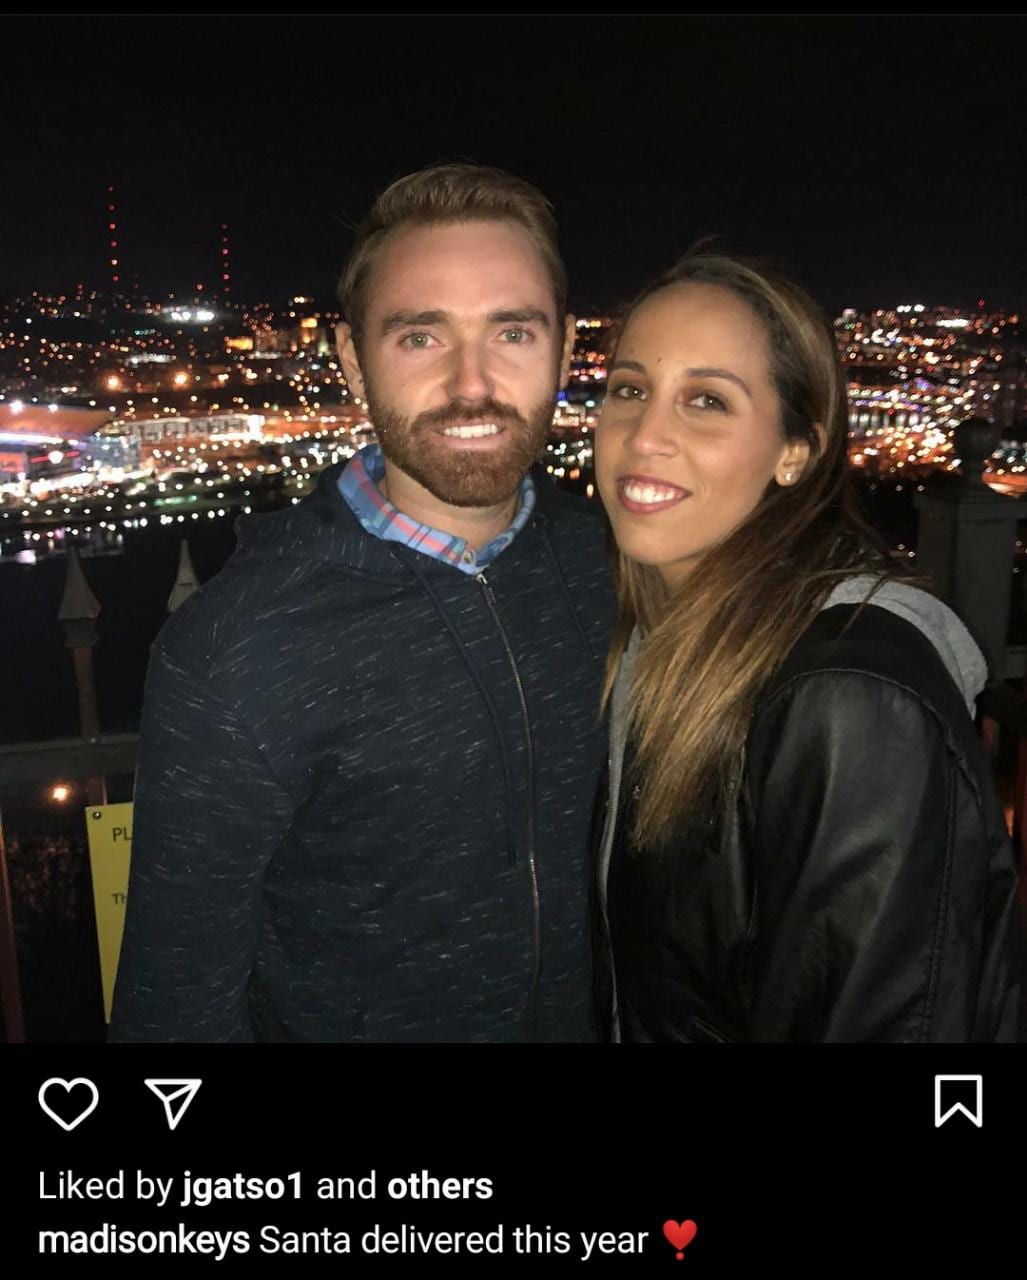 Who Is Madison Keys Dating?